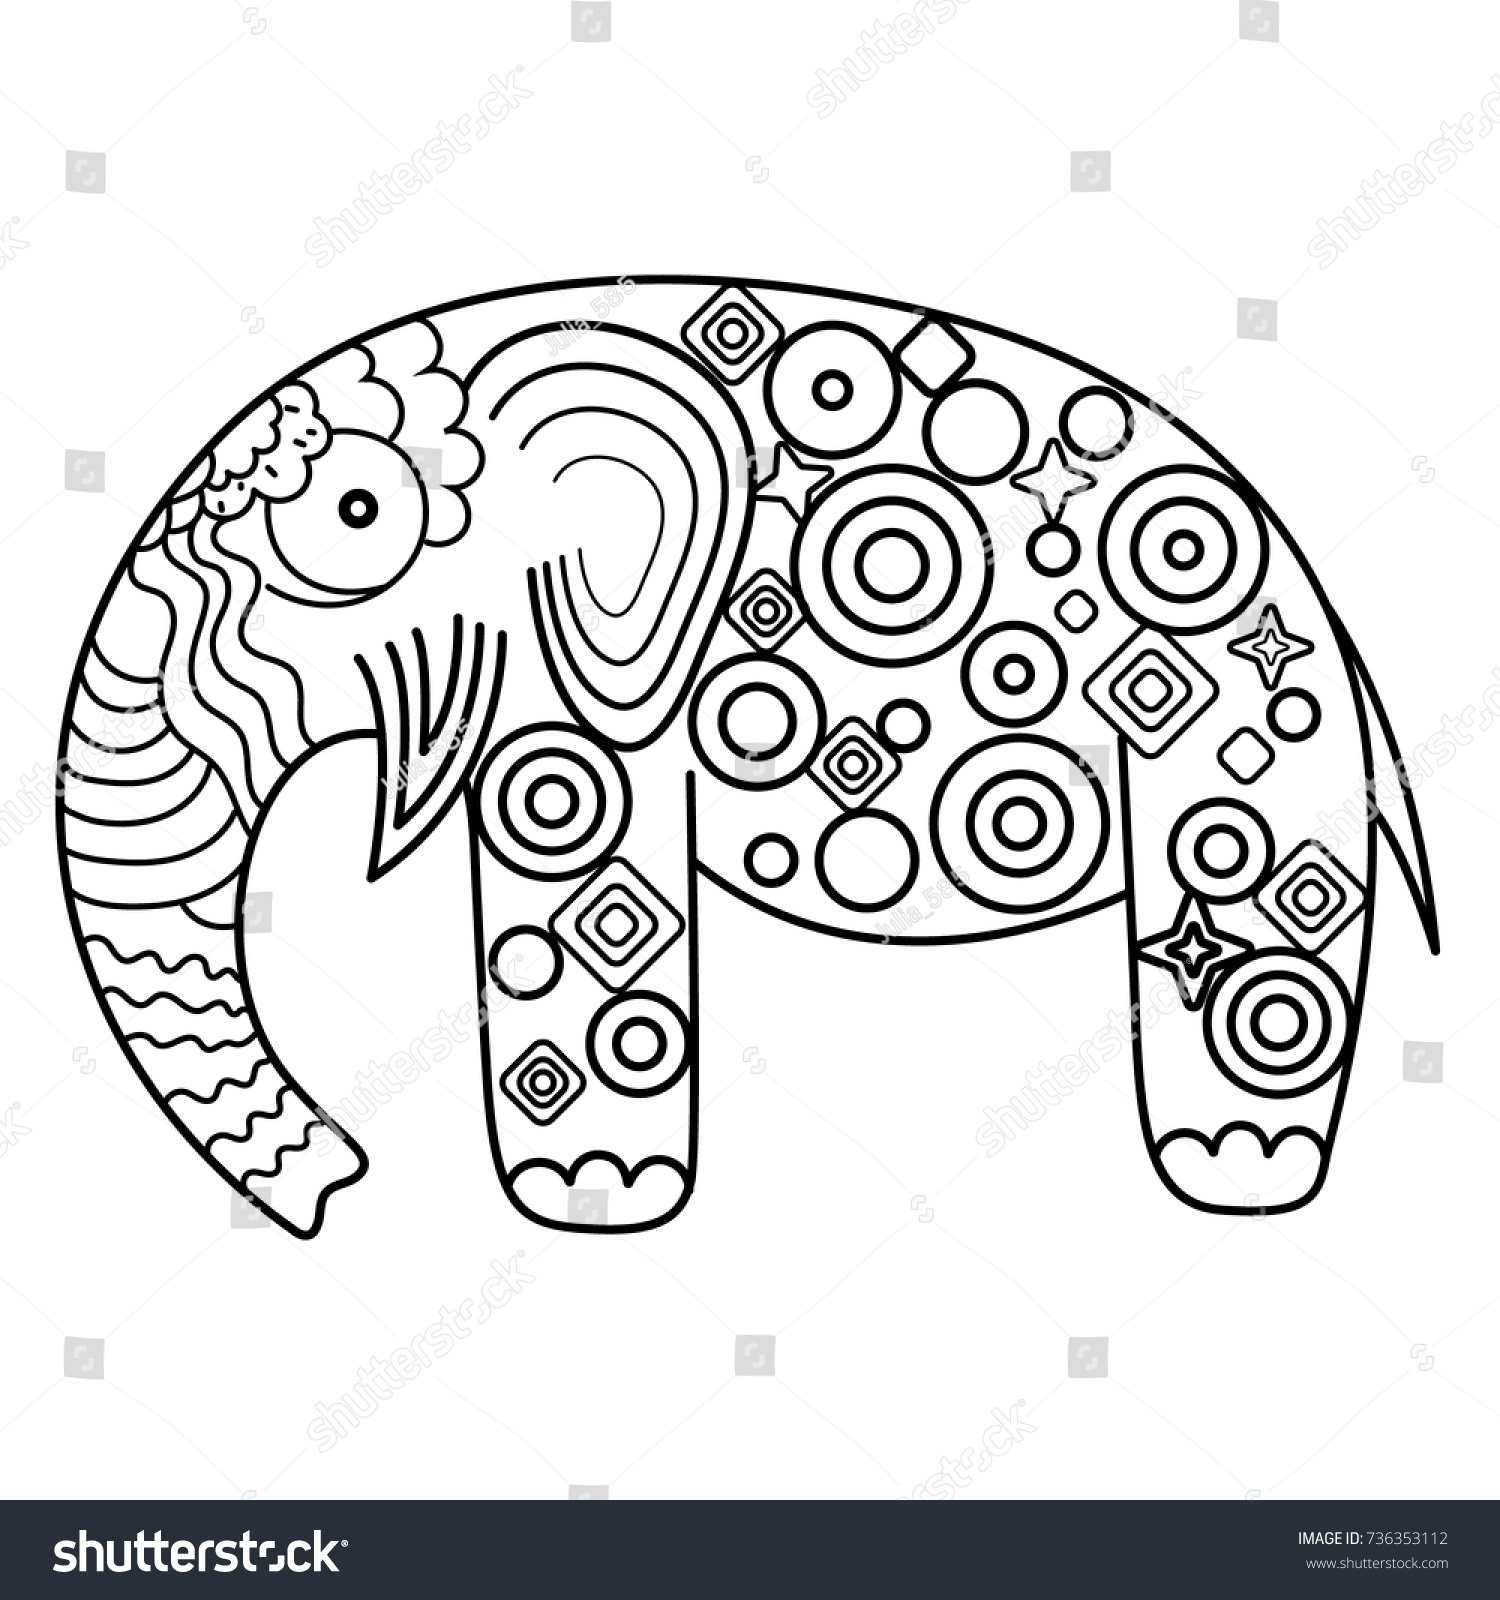 Vector Illustration Elephant Coloring Page Adult Stock Vector ...